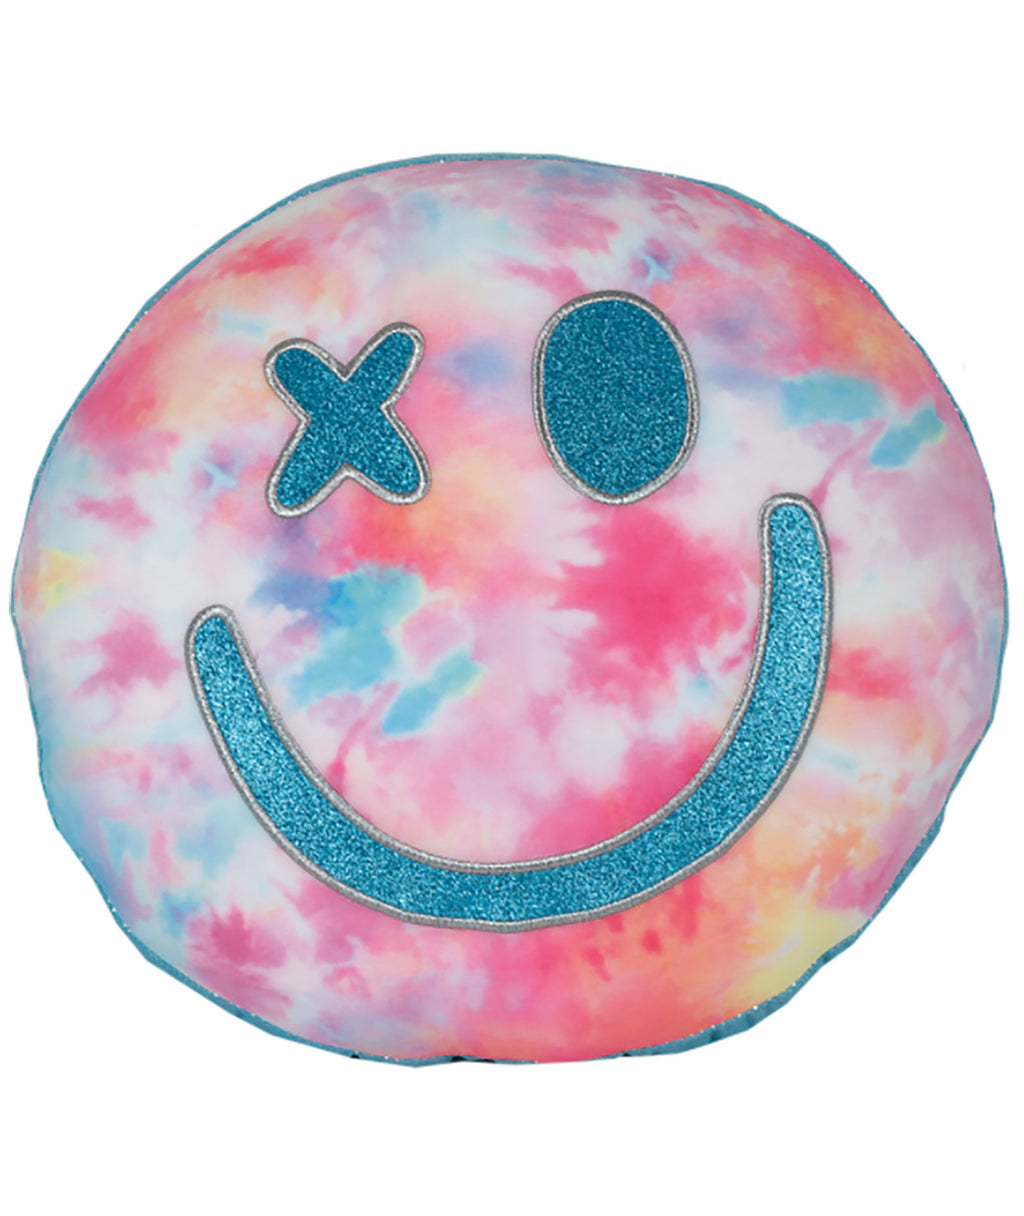 iScream Cotton Candy Smiley Face Pillow